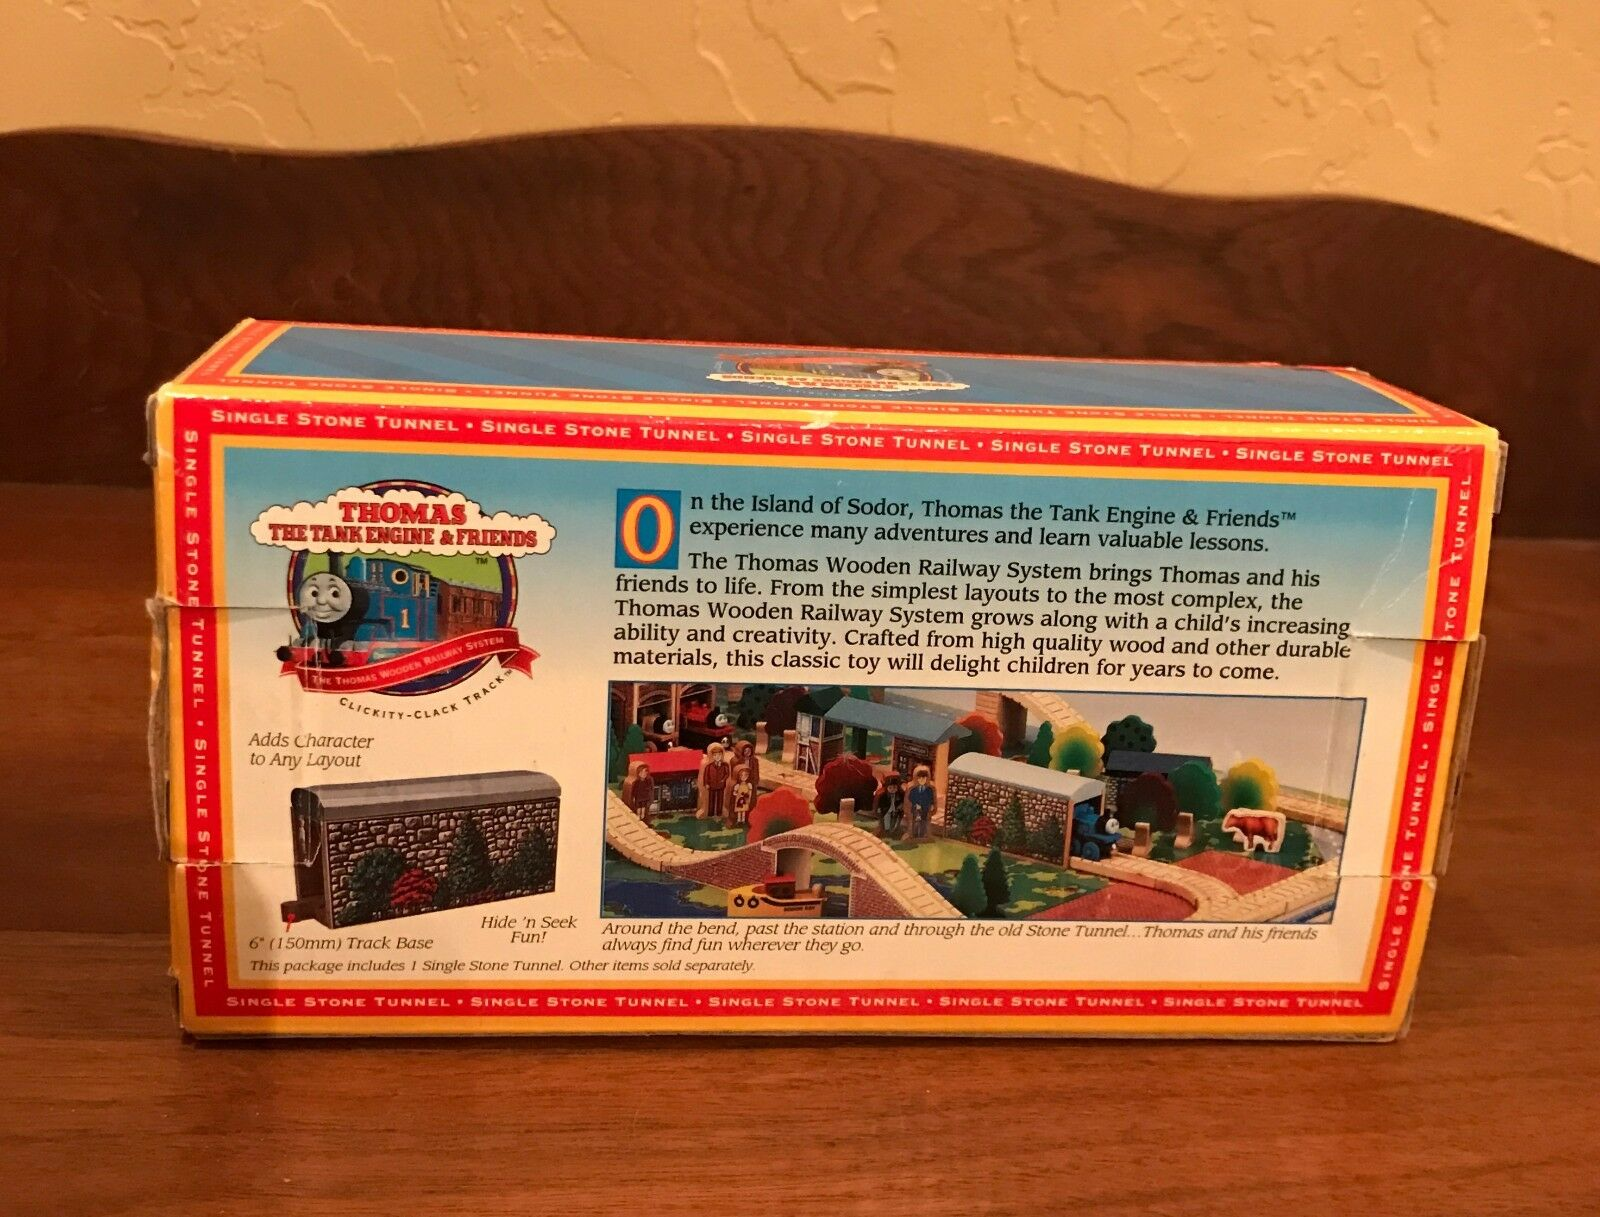 Learning Curve Thomas and Friends 'Single Stone Tunnel' Tunnel' Tunnel' 1996 New in box 33c9a2